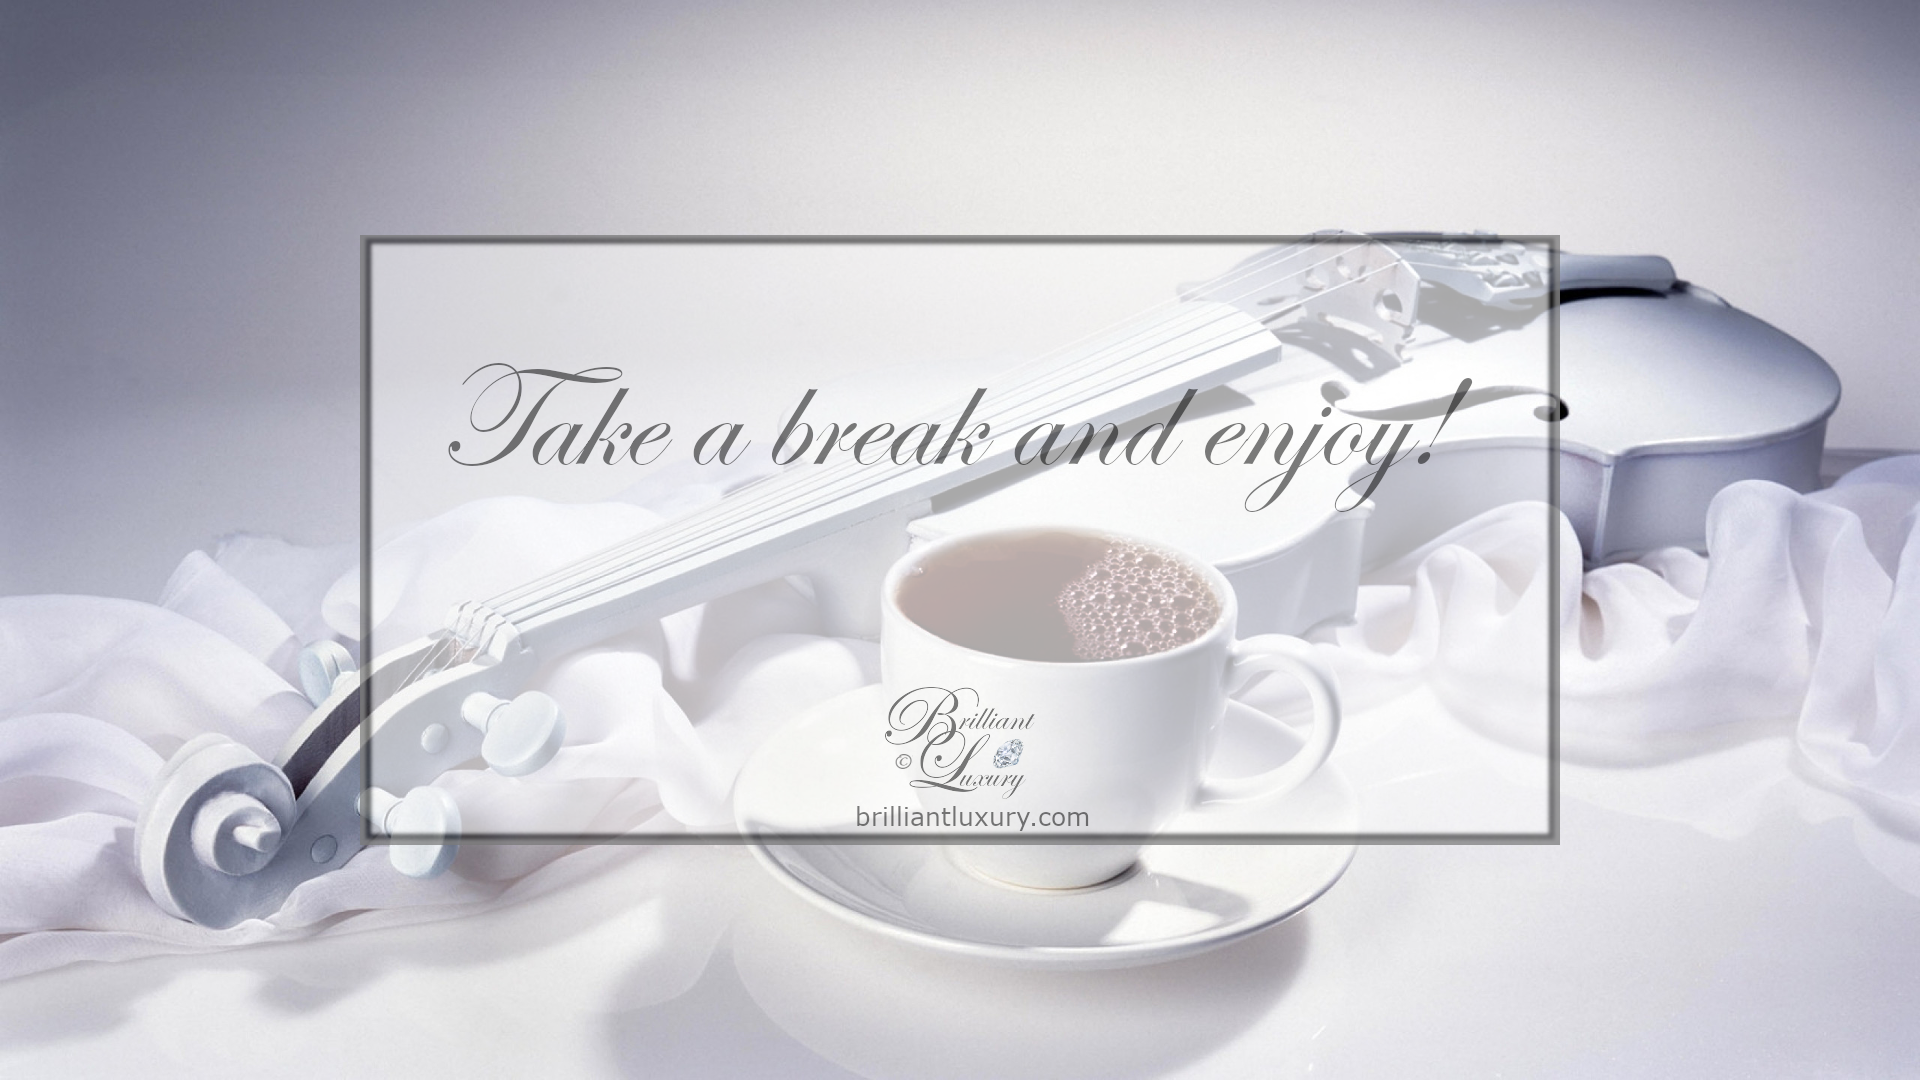 Enjoy your Brilliant Luxury break